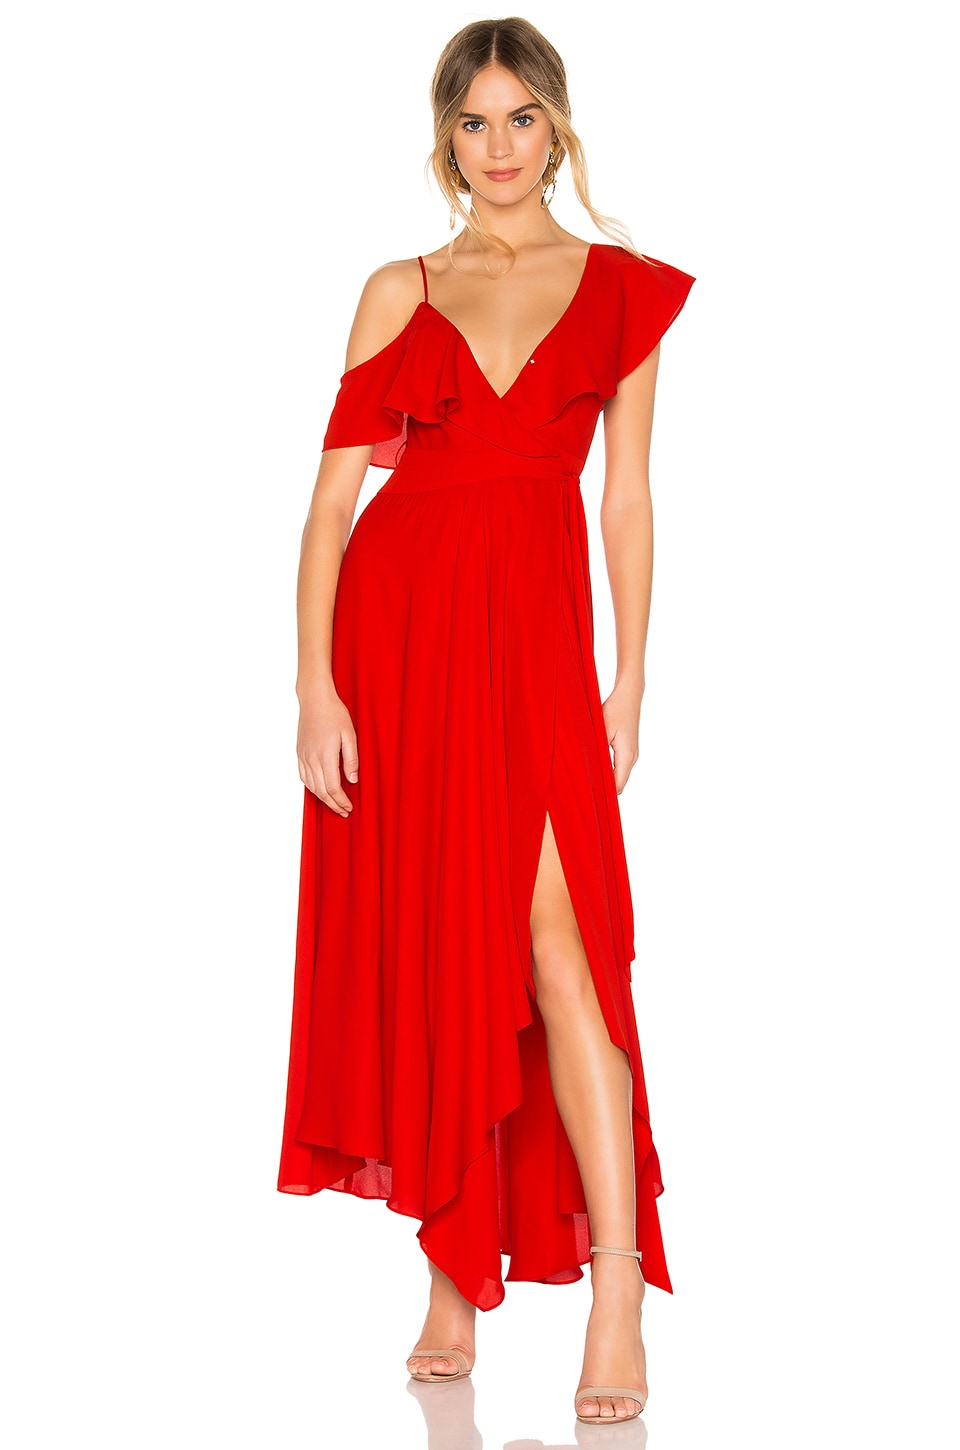 LIKELY x REVOLVE Leilani Dress in Red